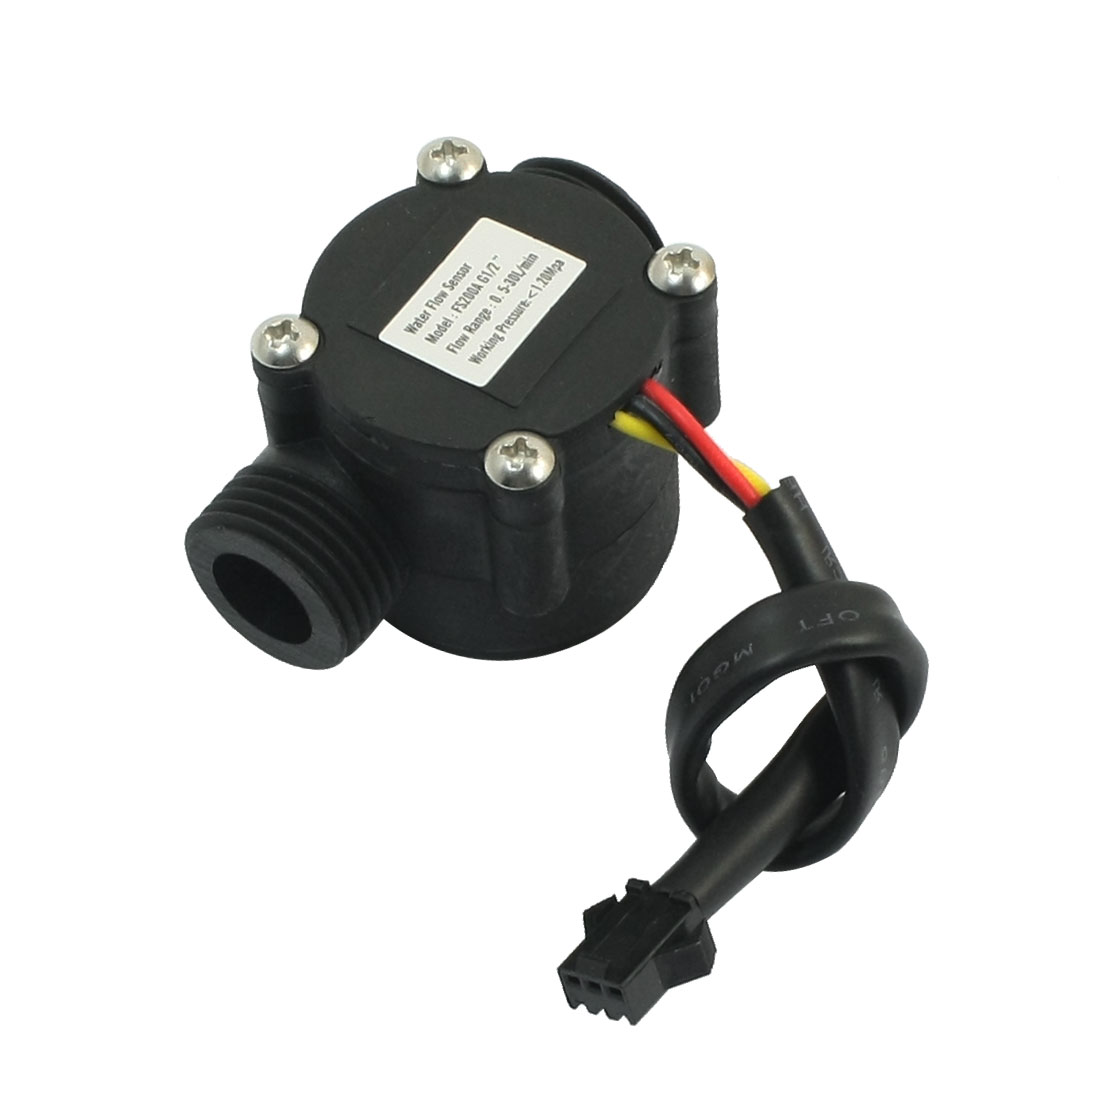 G1/2 Threaded 0.5-30L/min 1.2Mpa Hall Switch Fluid Water Flow Sensor Flowmeter